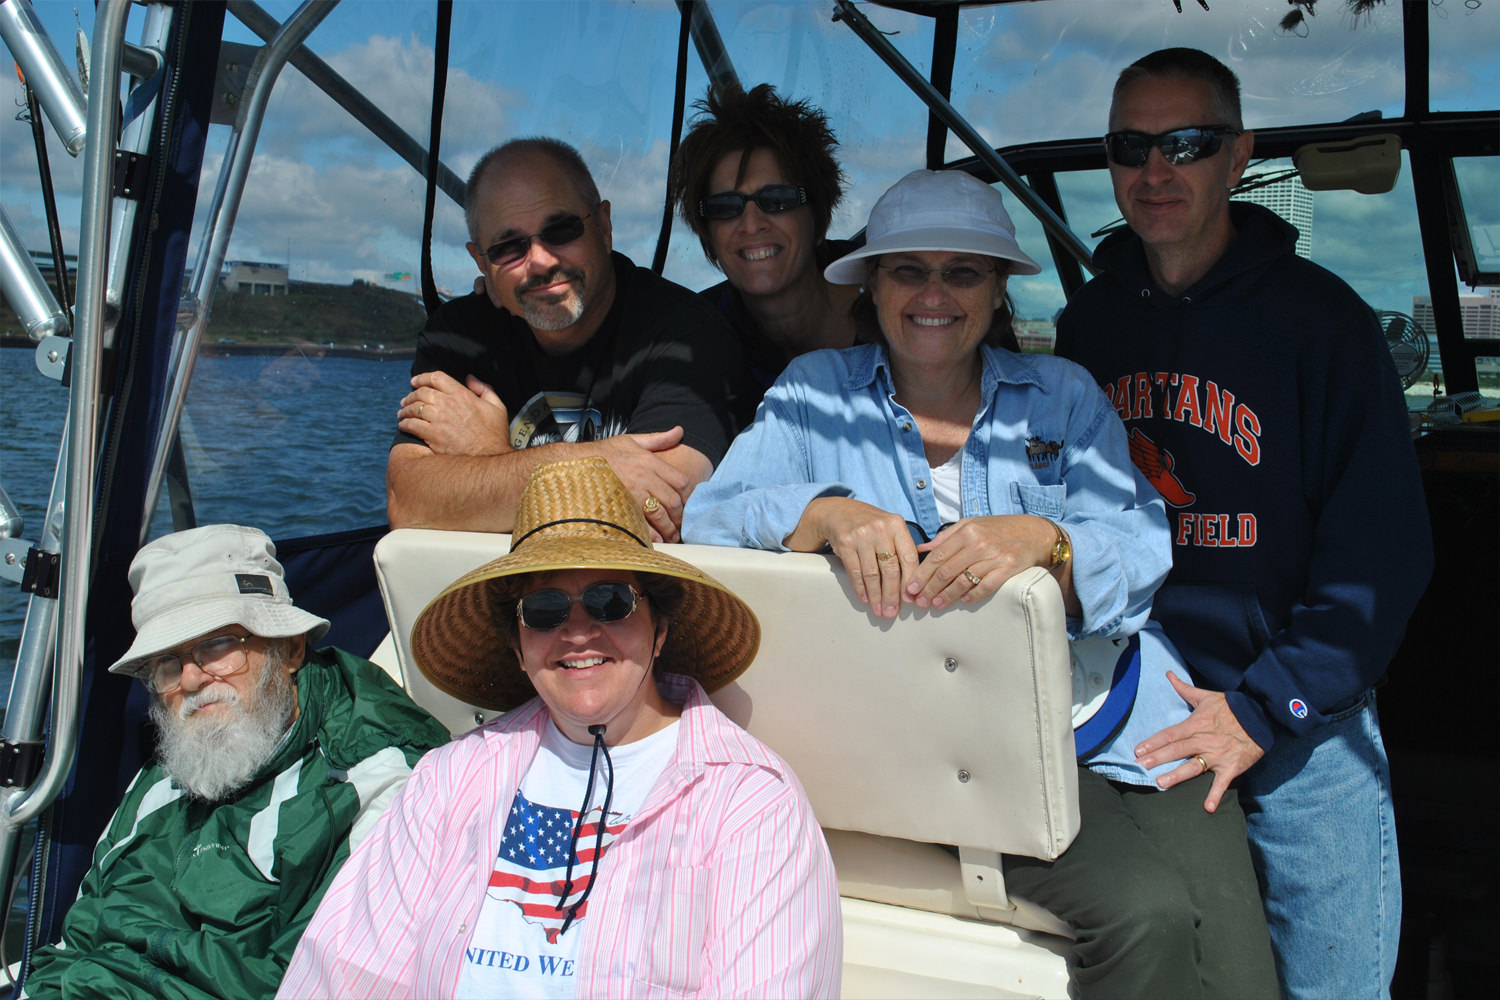 Roberta and Family on a Milwaukee Fishing Charter